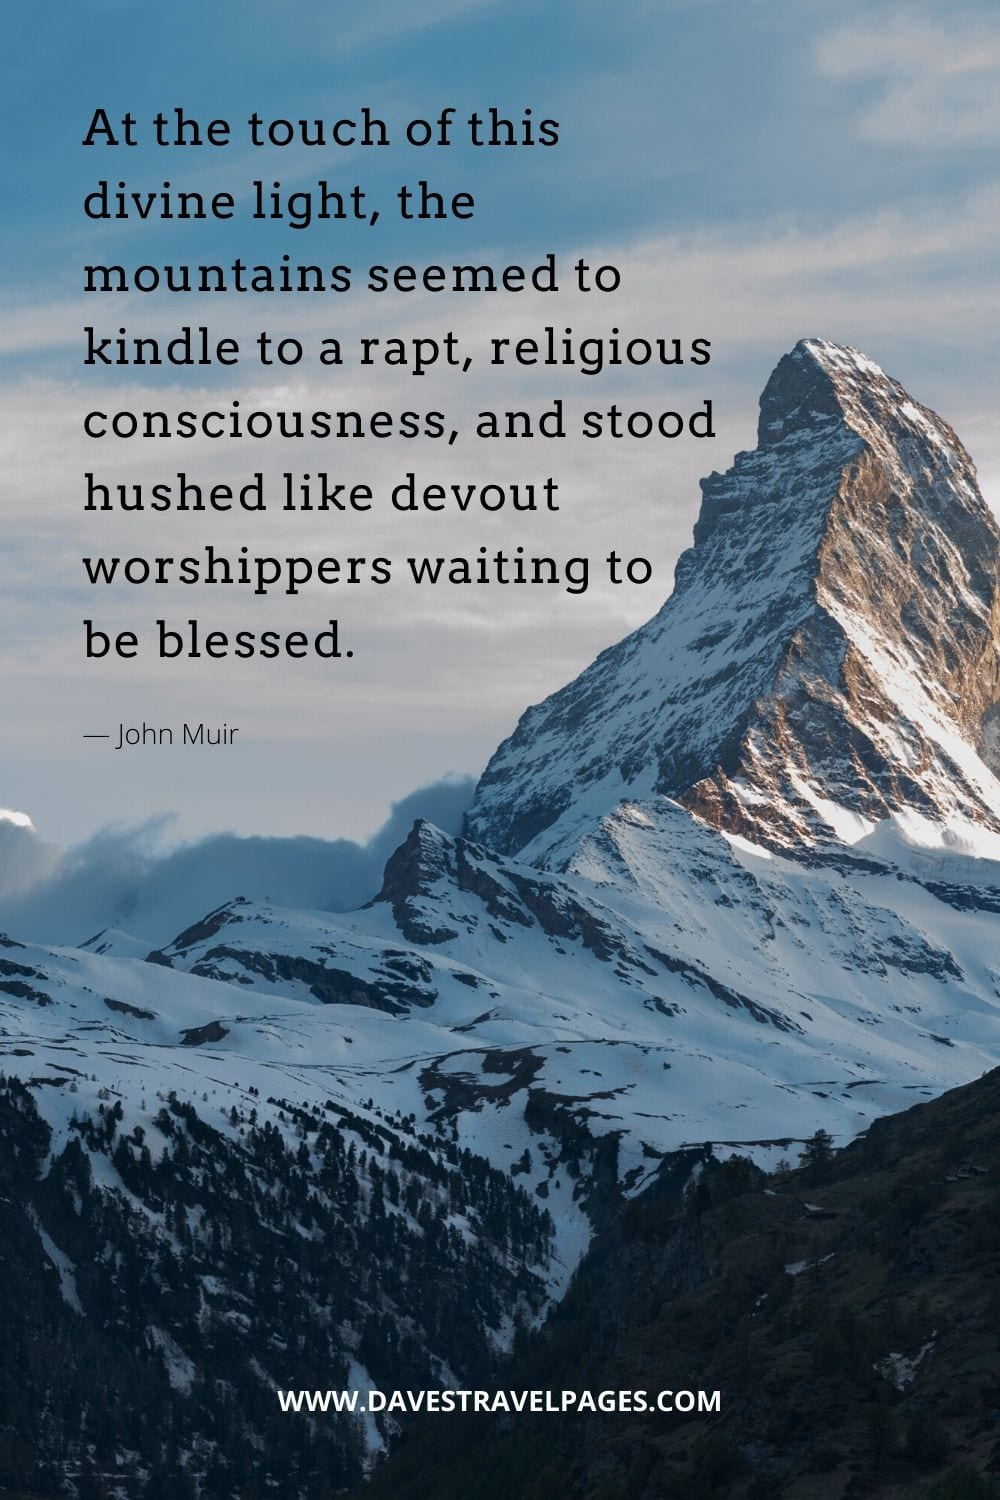 """Quotes about mountains - """"At the touch of this divine light, the mountains seemed to kindle to a rapt, religious consciousness, and stood hushed like devout worshippers waiting to be blessed.""""― John Muir"""